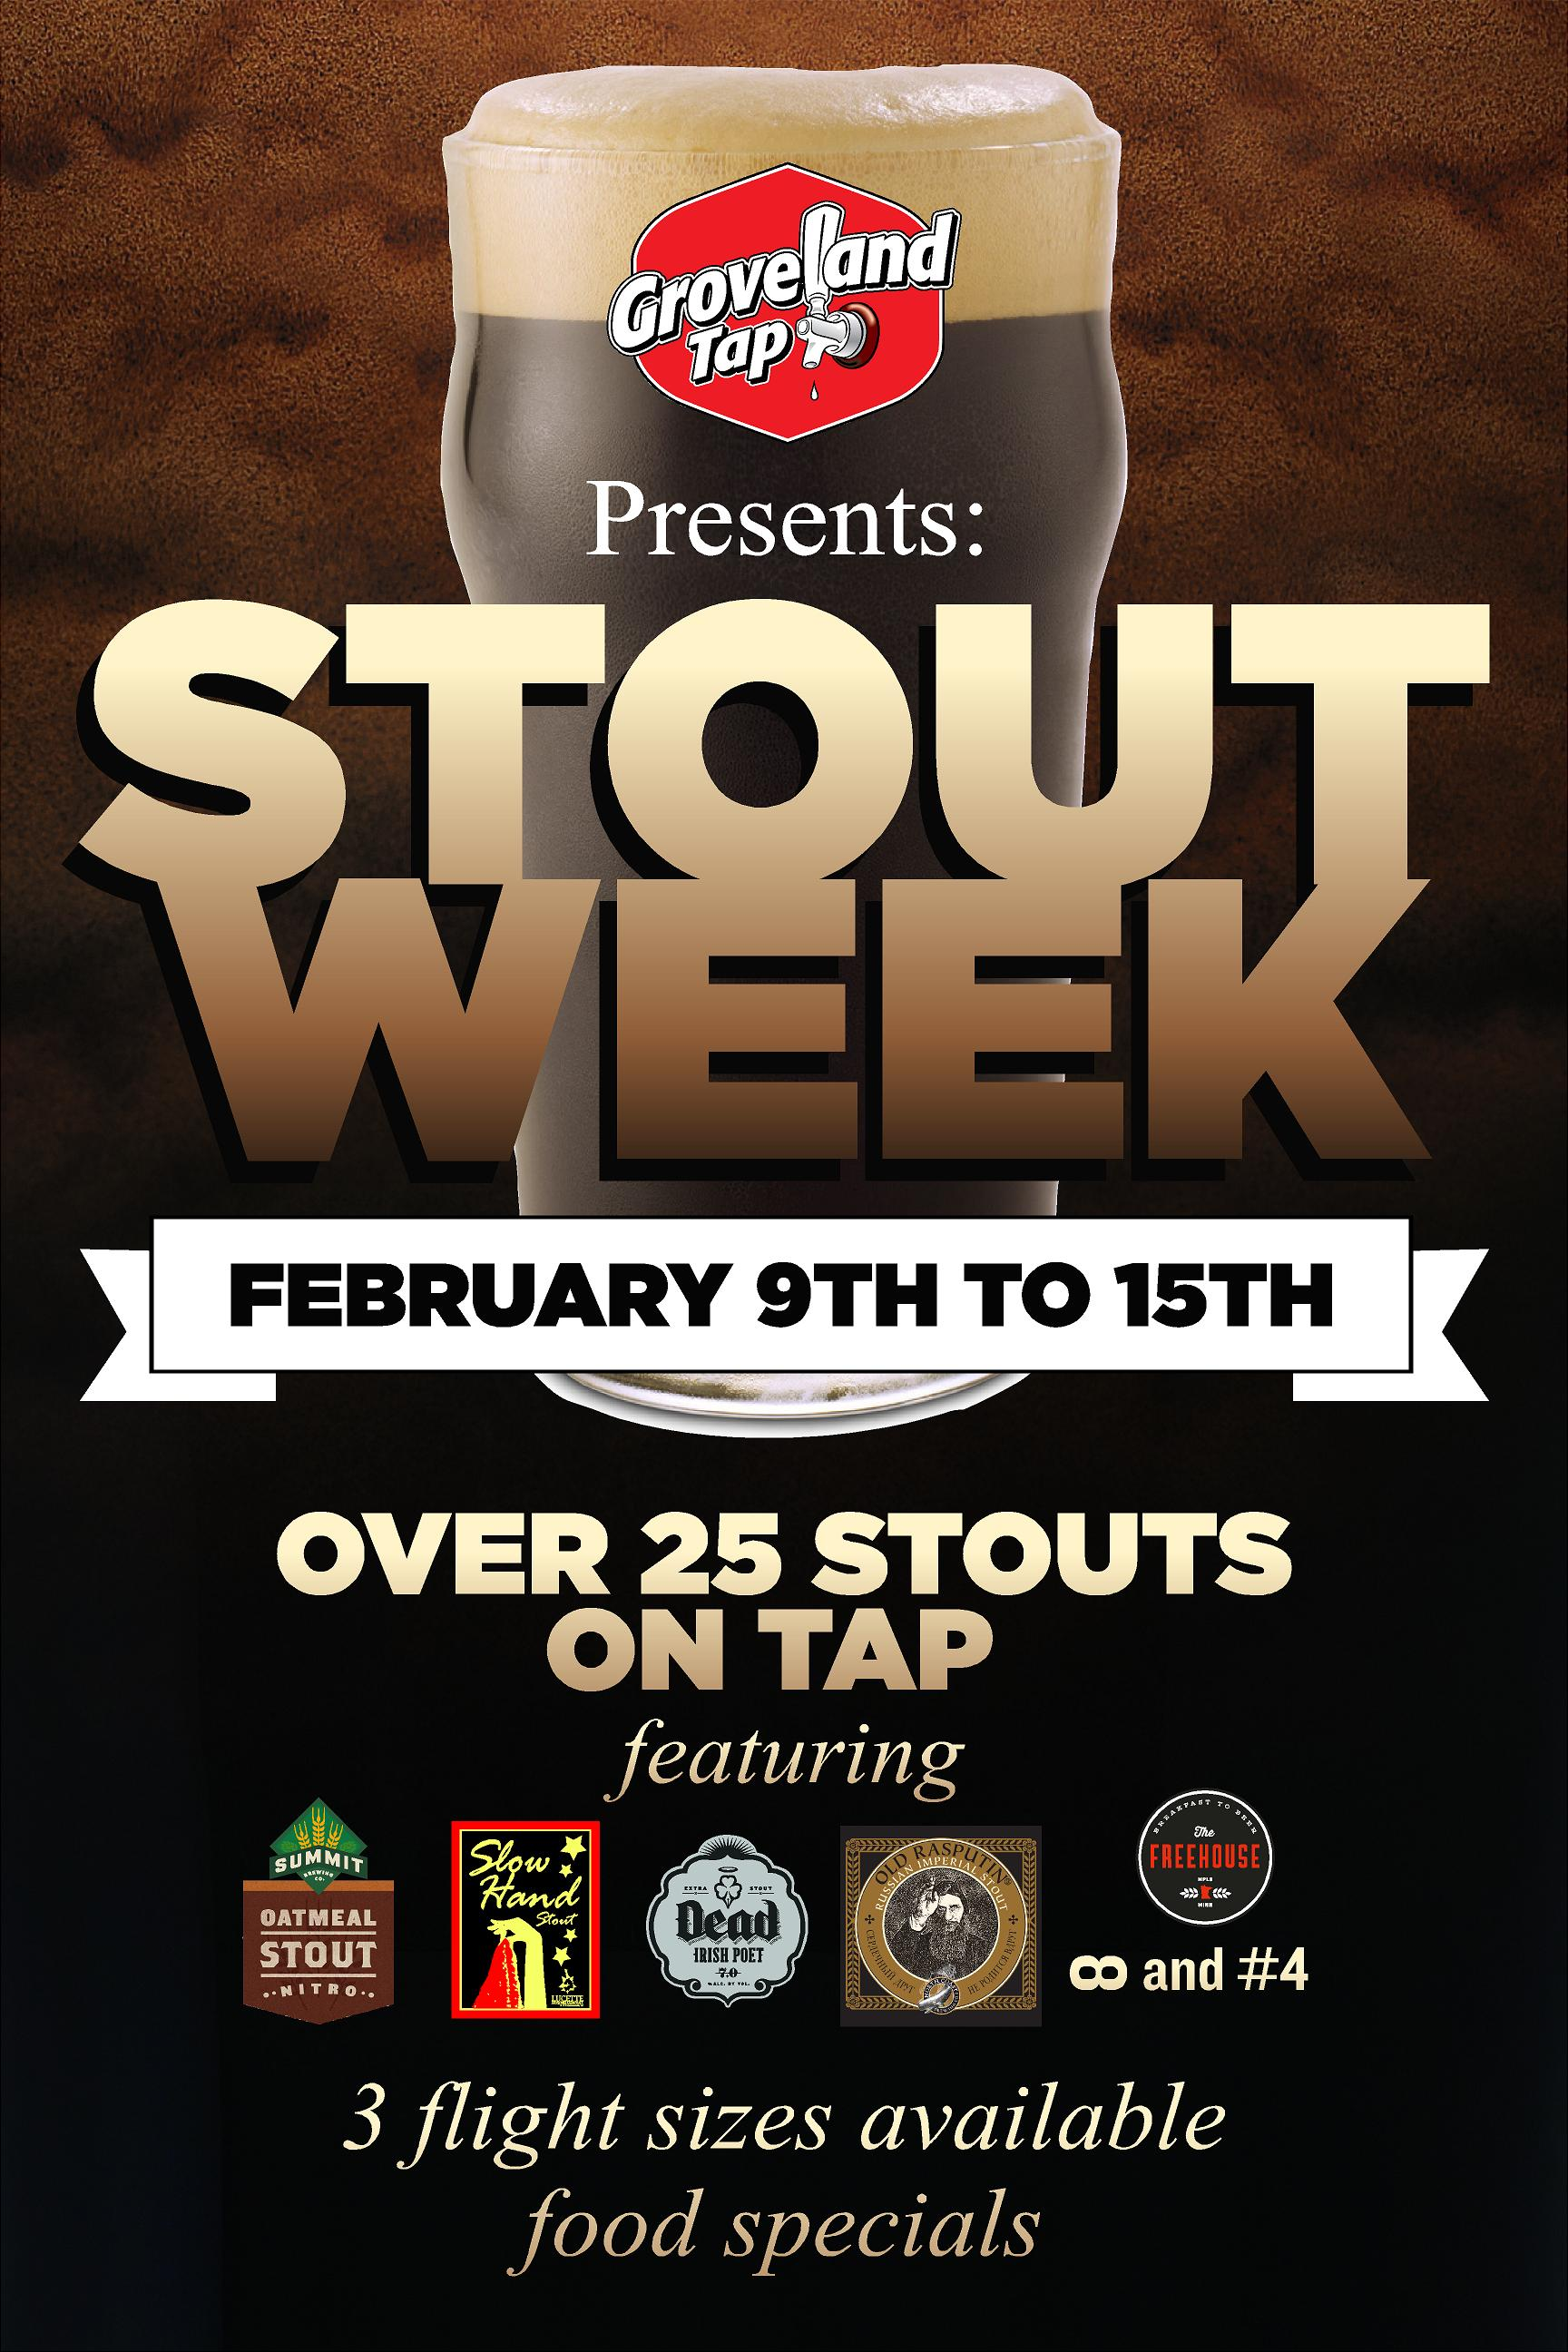 Groveland-Tap-Stout-Week